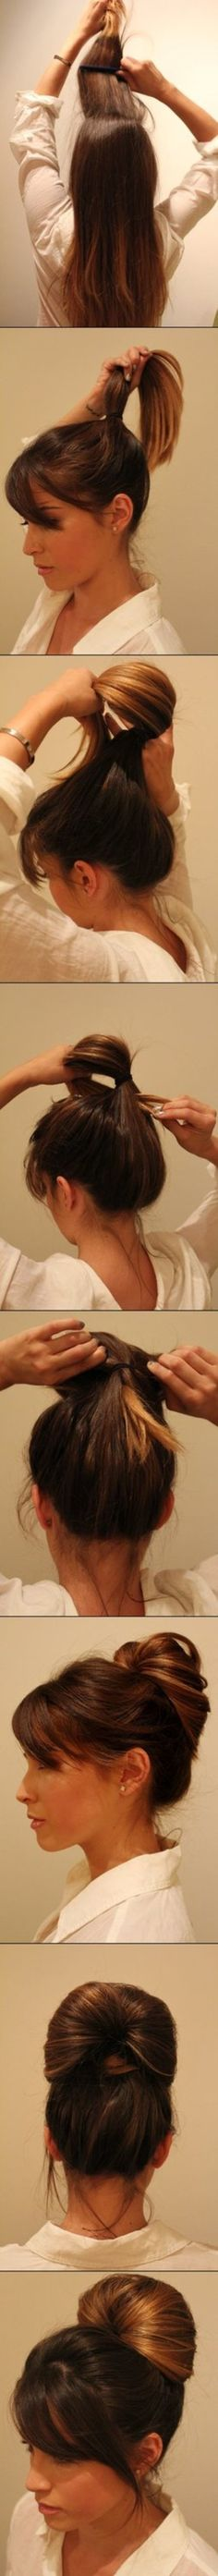 Easy Updo in seconds #updo #hairstyle #hair #bun #tutorial - bellashoot.com